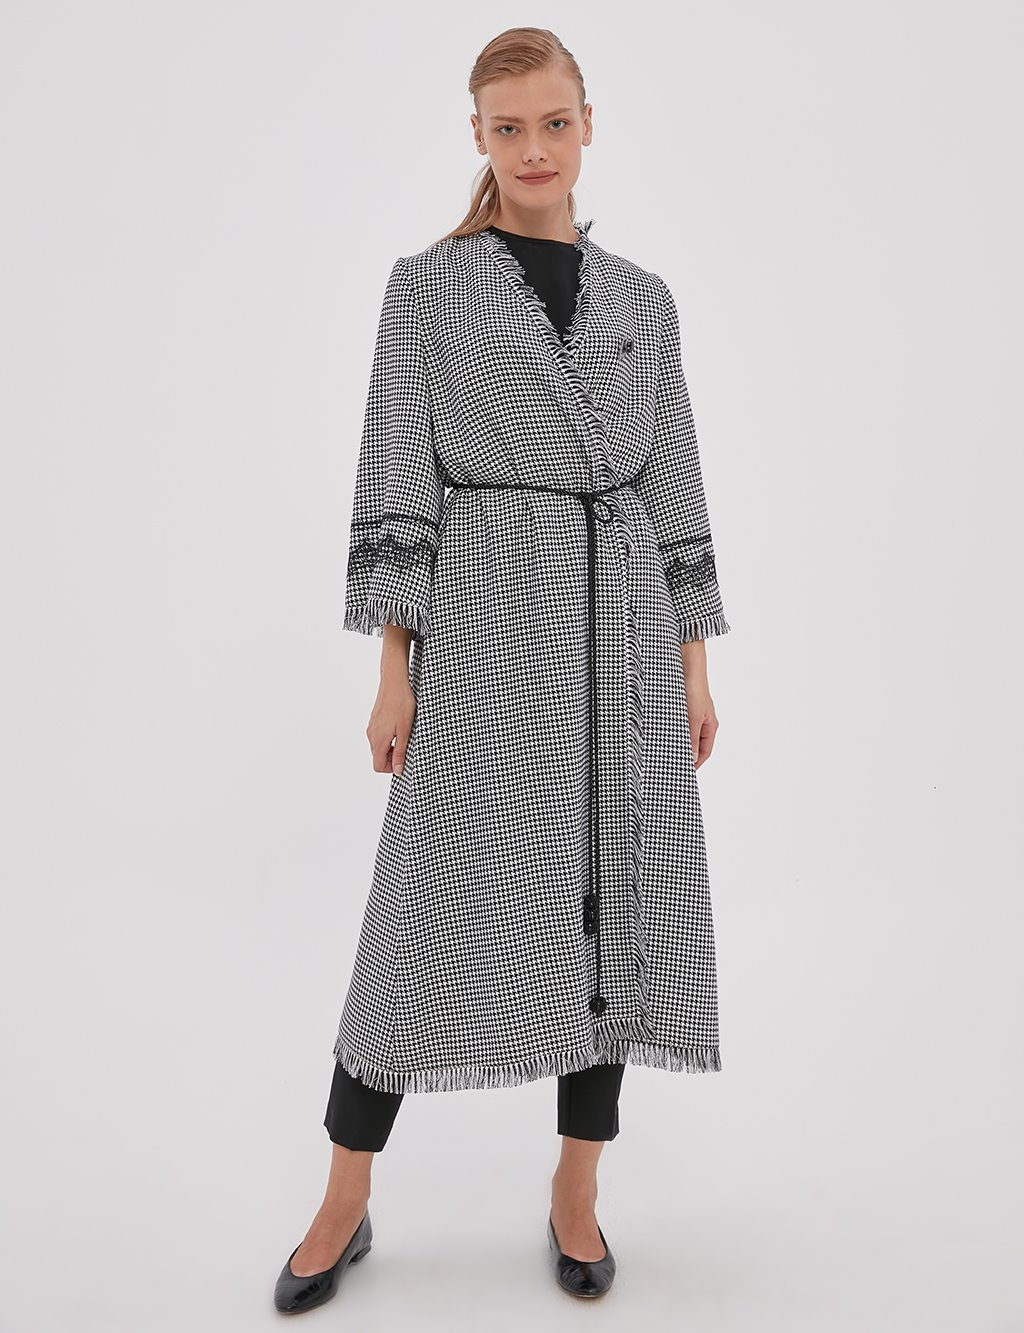 Goose Foot Pattern Fringed Trench Coat A20 25109 Black